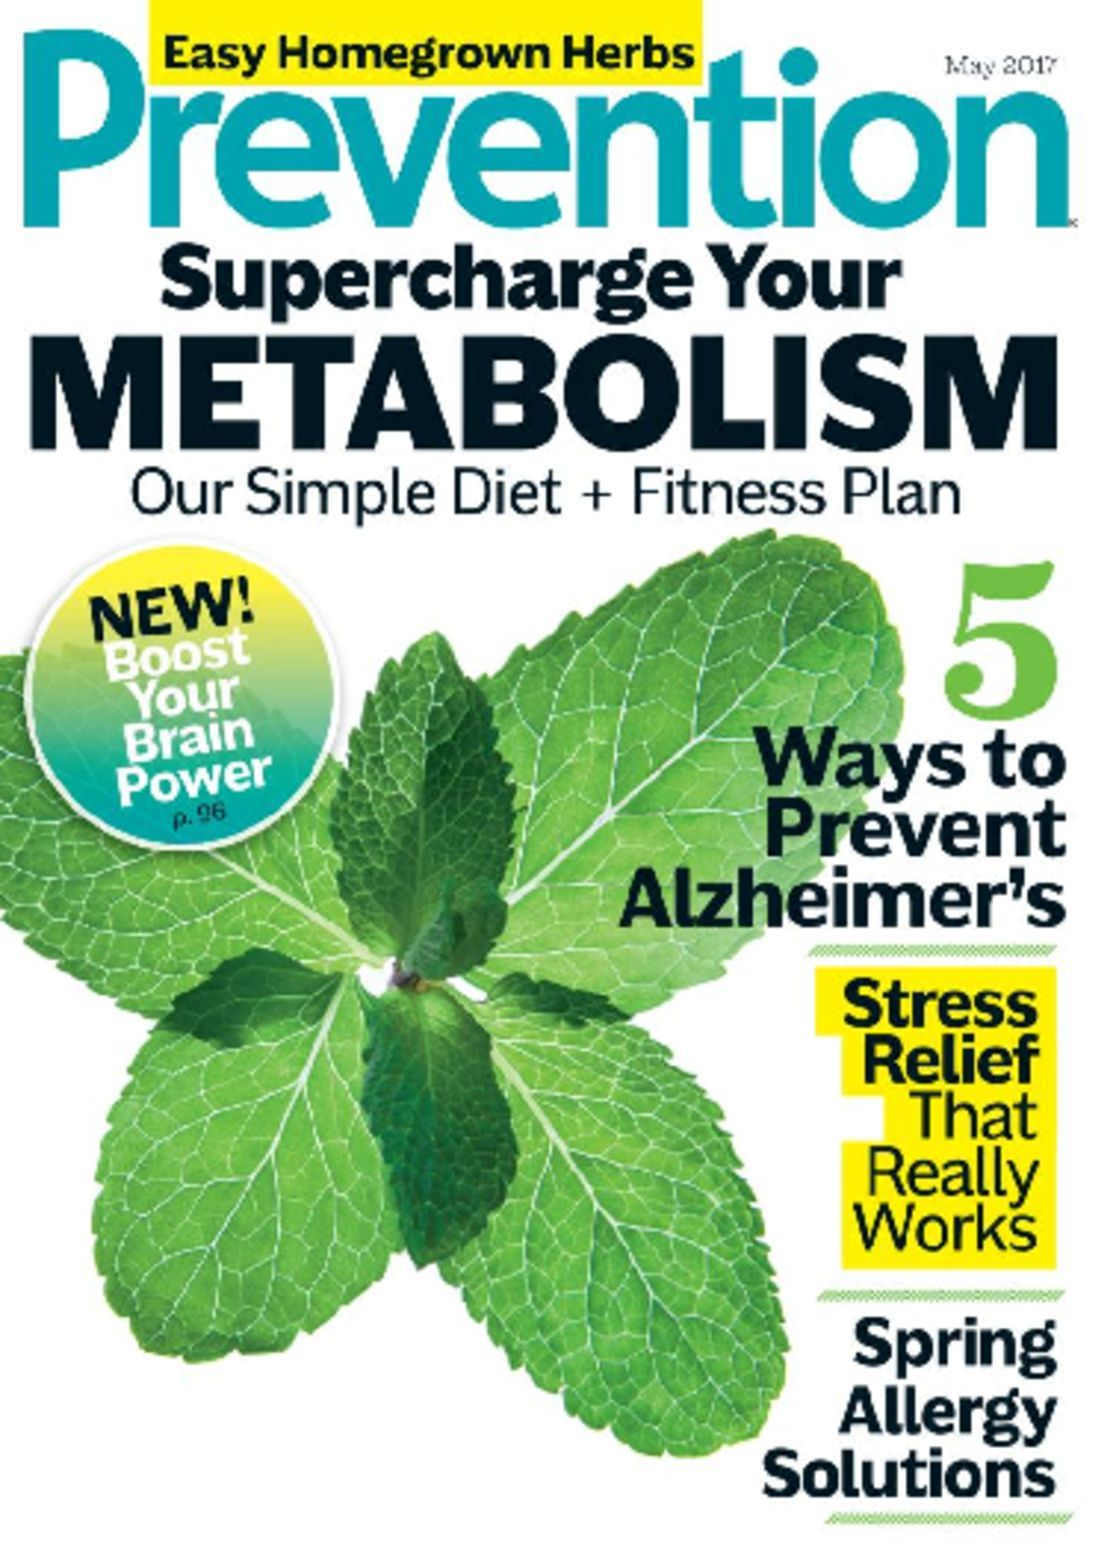 Get a Prevention Magazine subscription discount. View magazine subscription coupon codes and special offers to save money when you subscribe to Prevention Magazine. This list of cheap Prevention magazine subscriptions is compiled as a service to shoppers by androidmods.ml